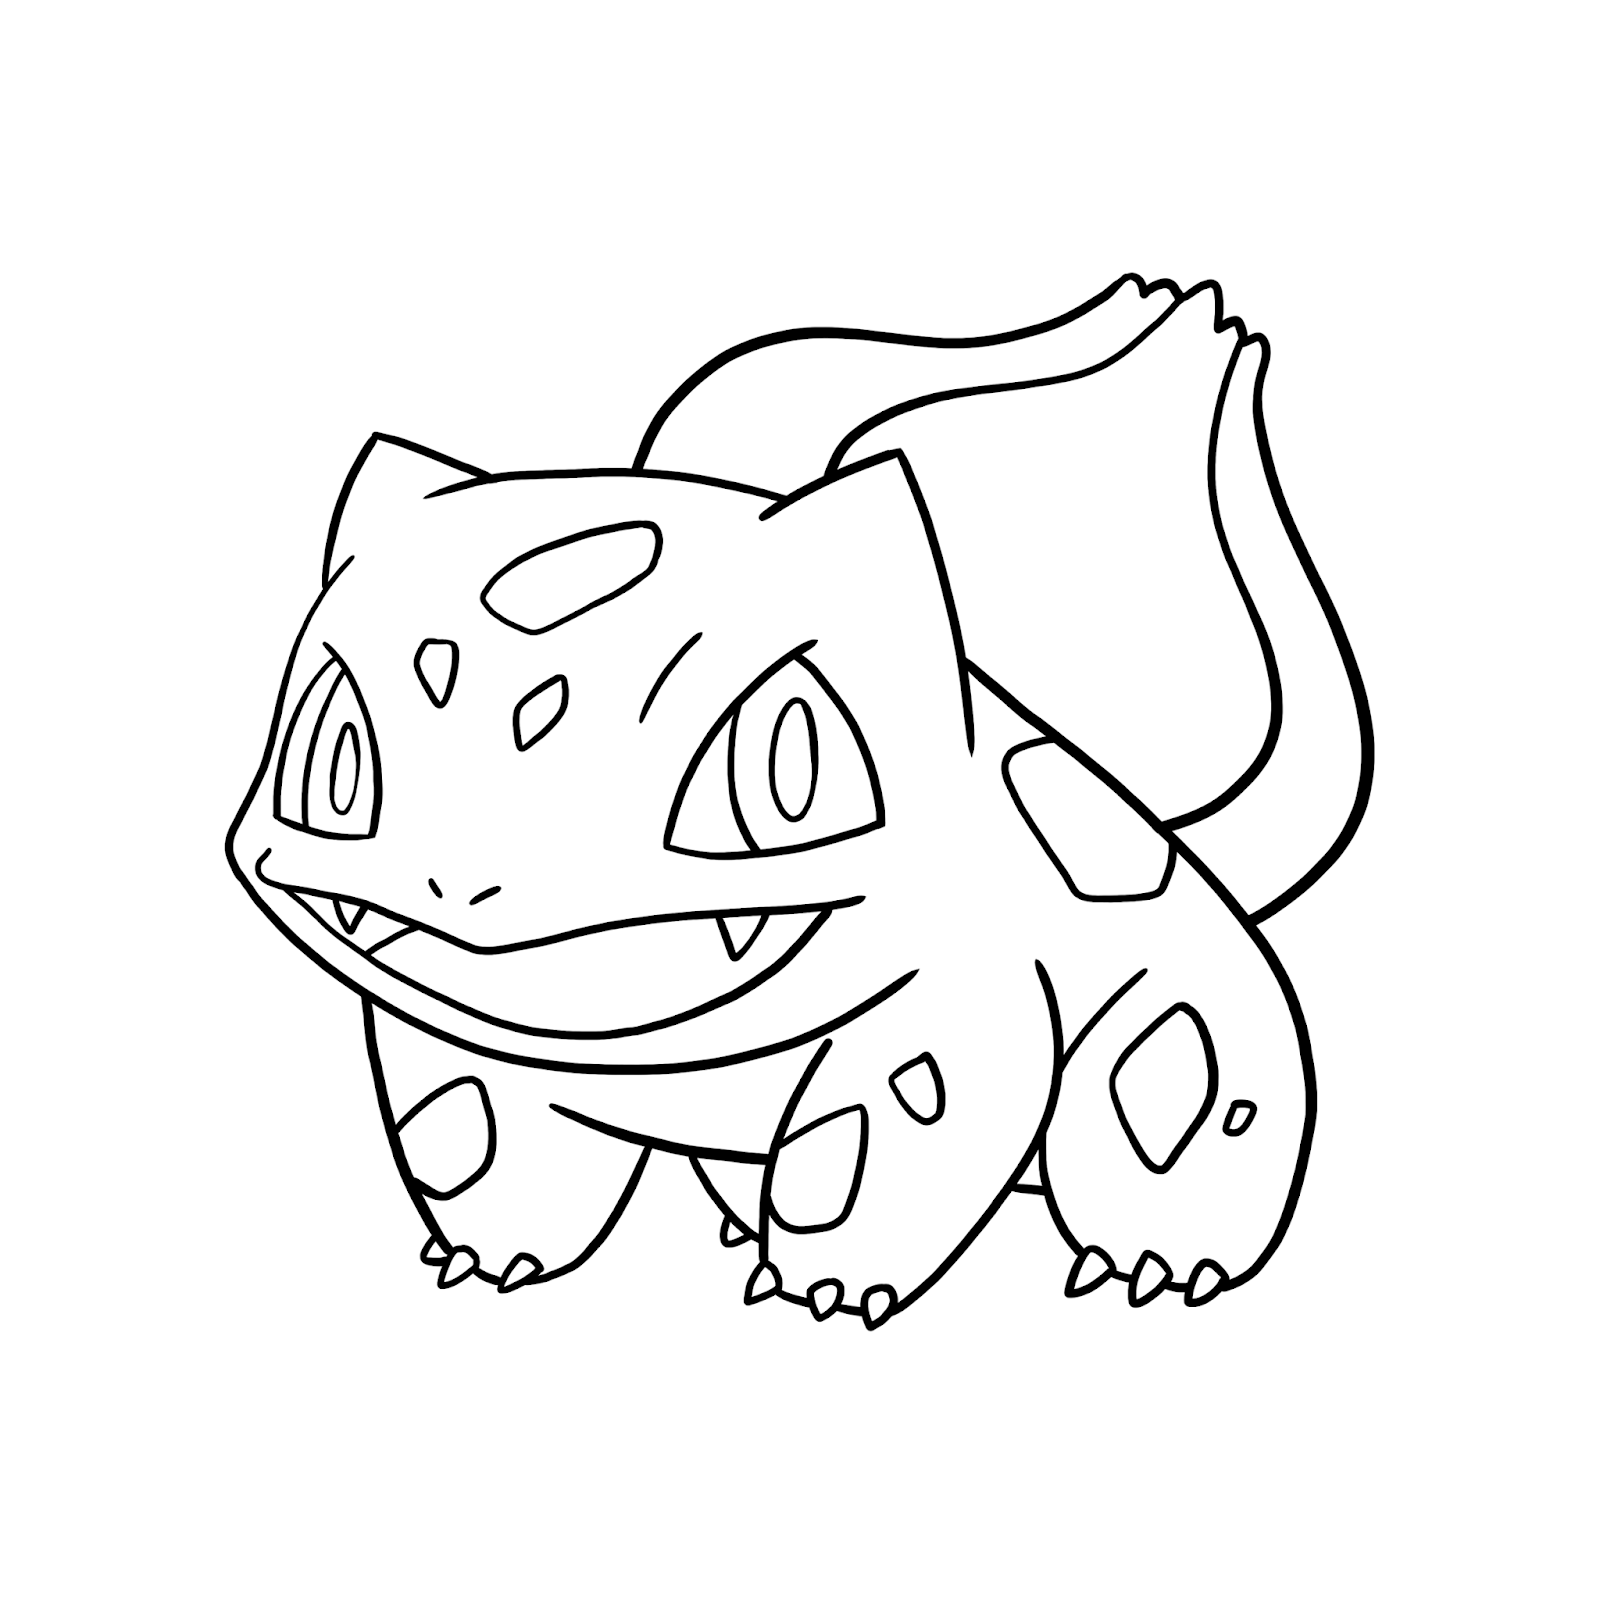 Bulbasaur Coloring Pages Free